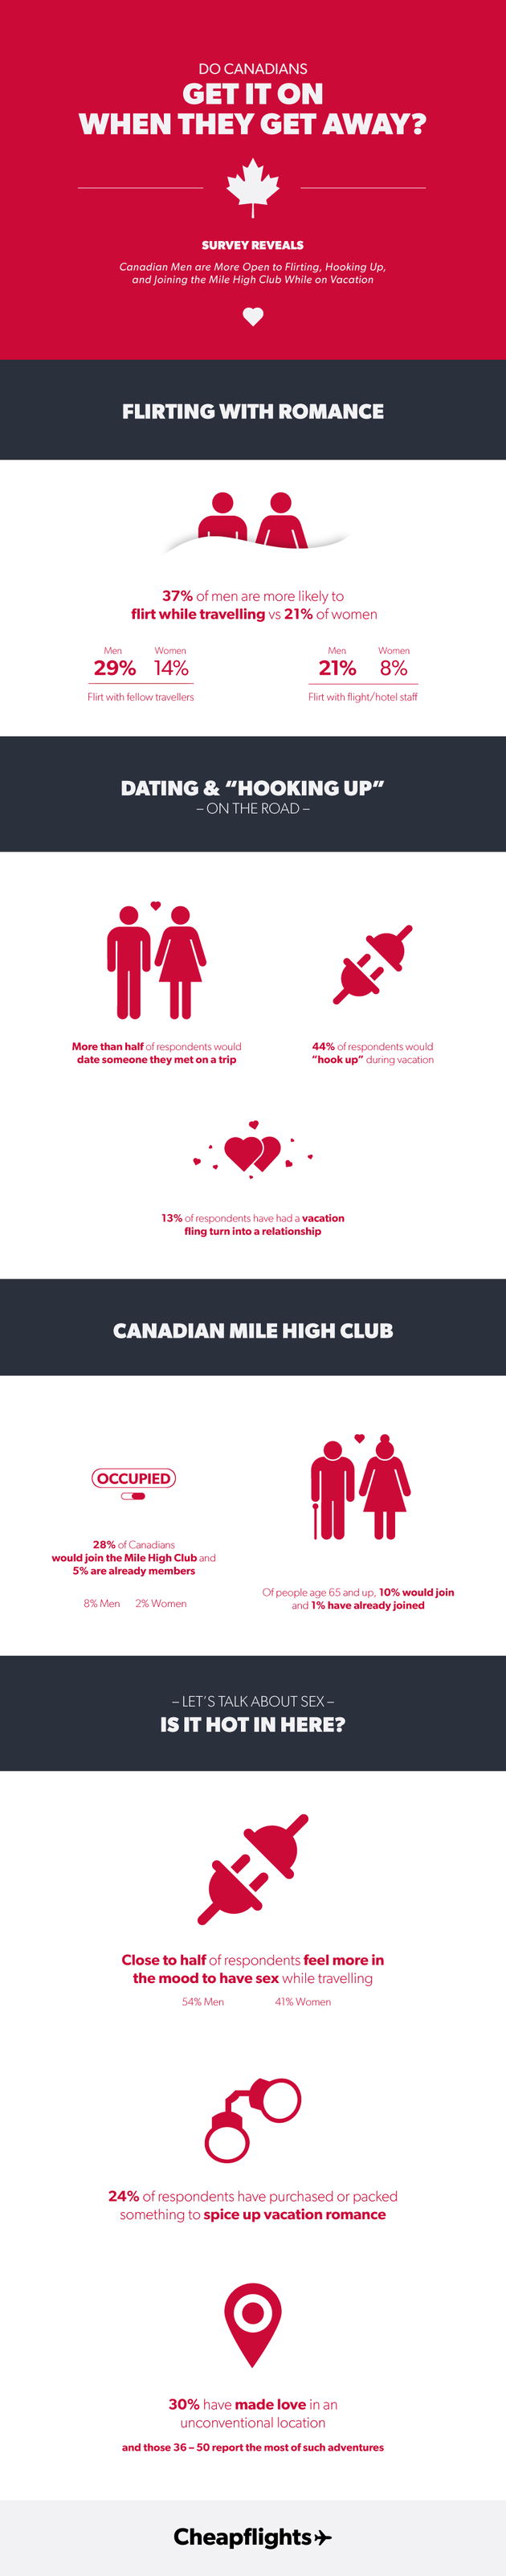 2016-02-09-1455034392-9547175-CheapFlights_Infographic_Canada.png